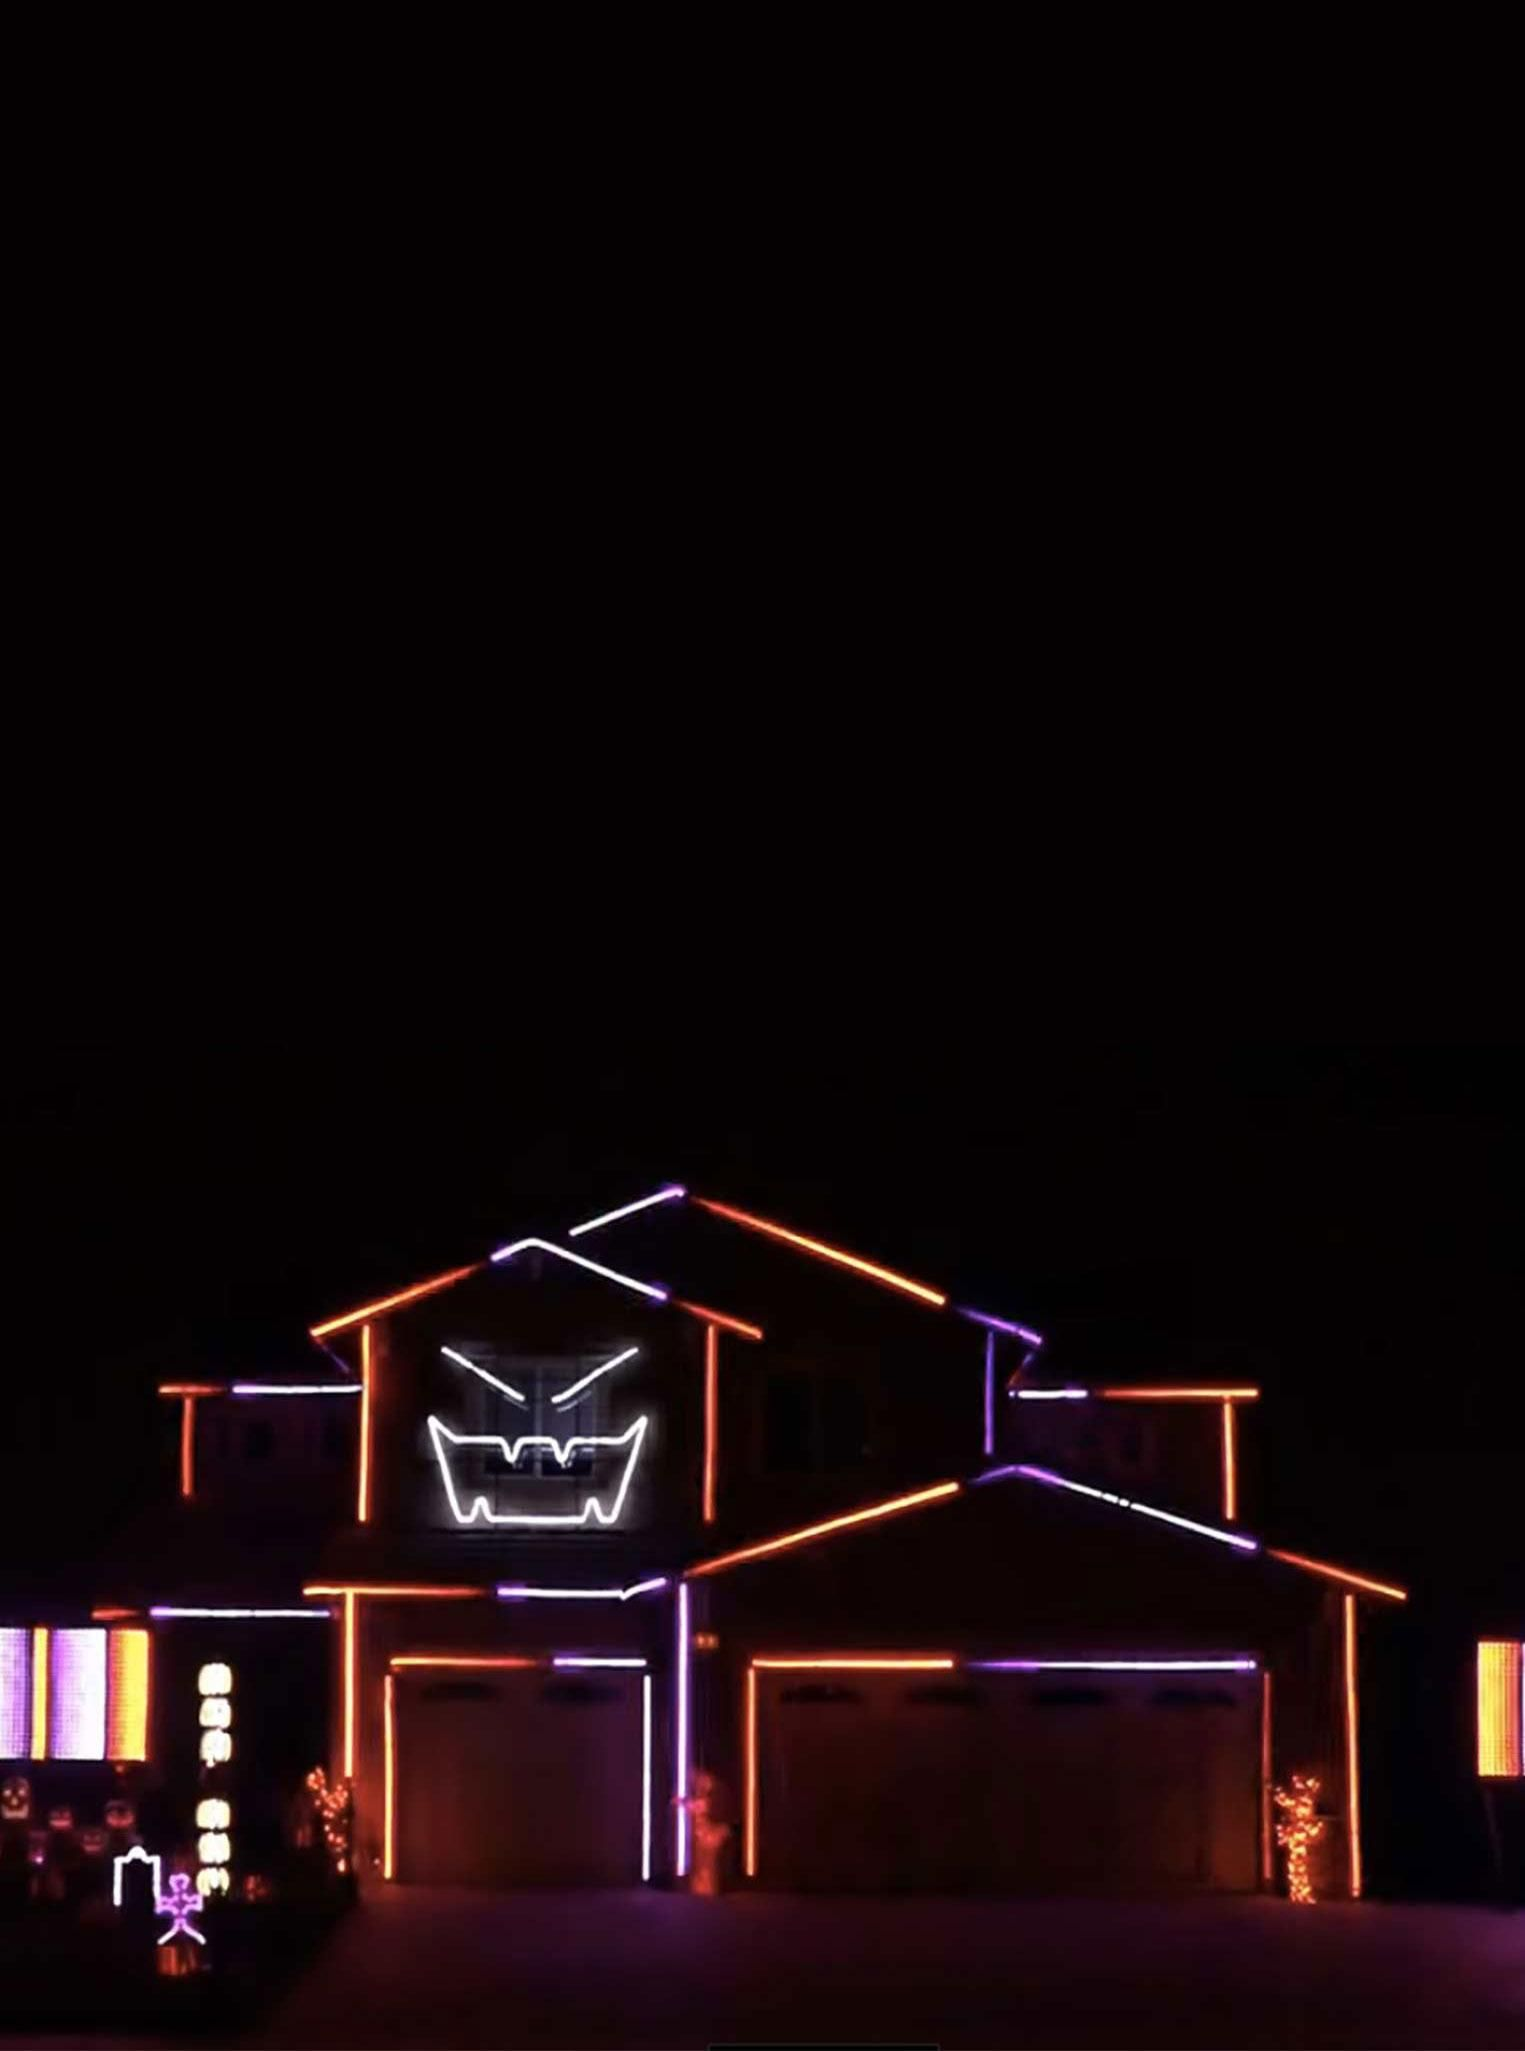 Creative Lighting Displays Decked Out Yet Another House In Riverside,  California For Its 7th Annual Ideas